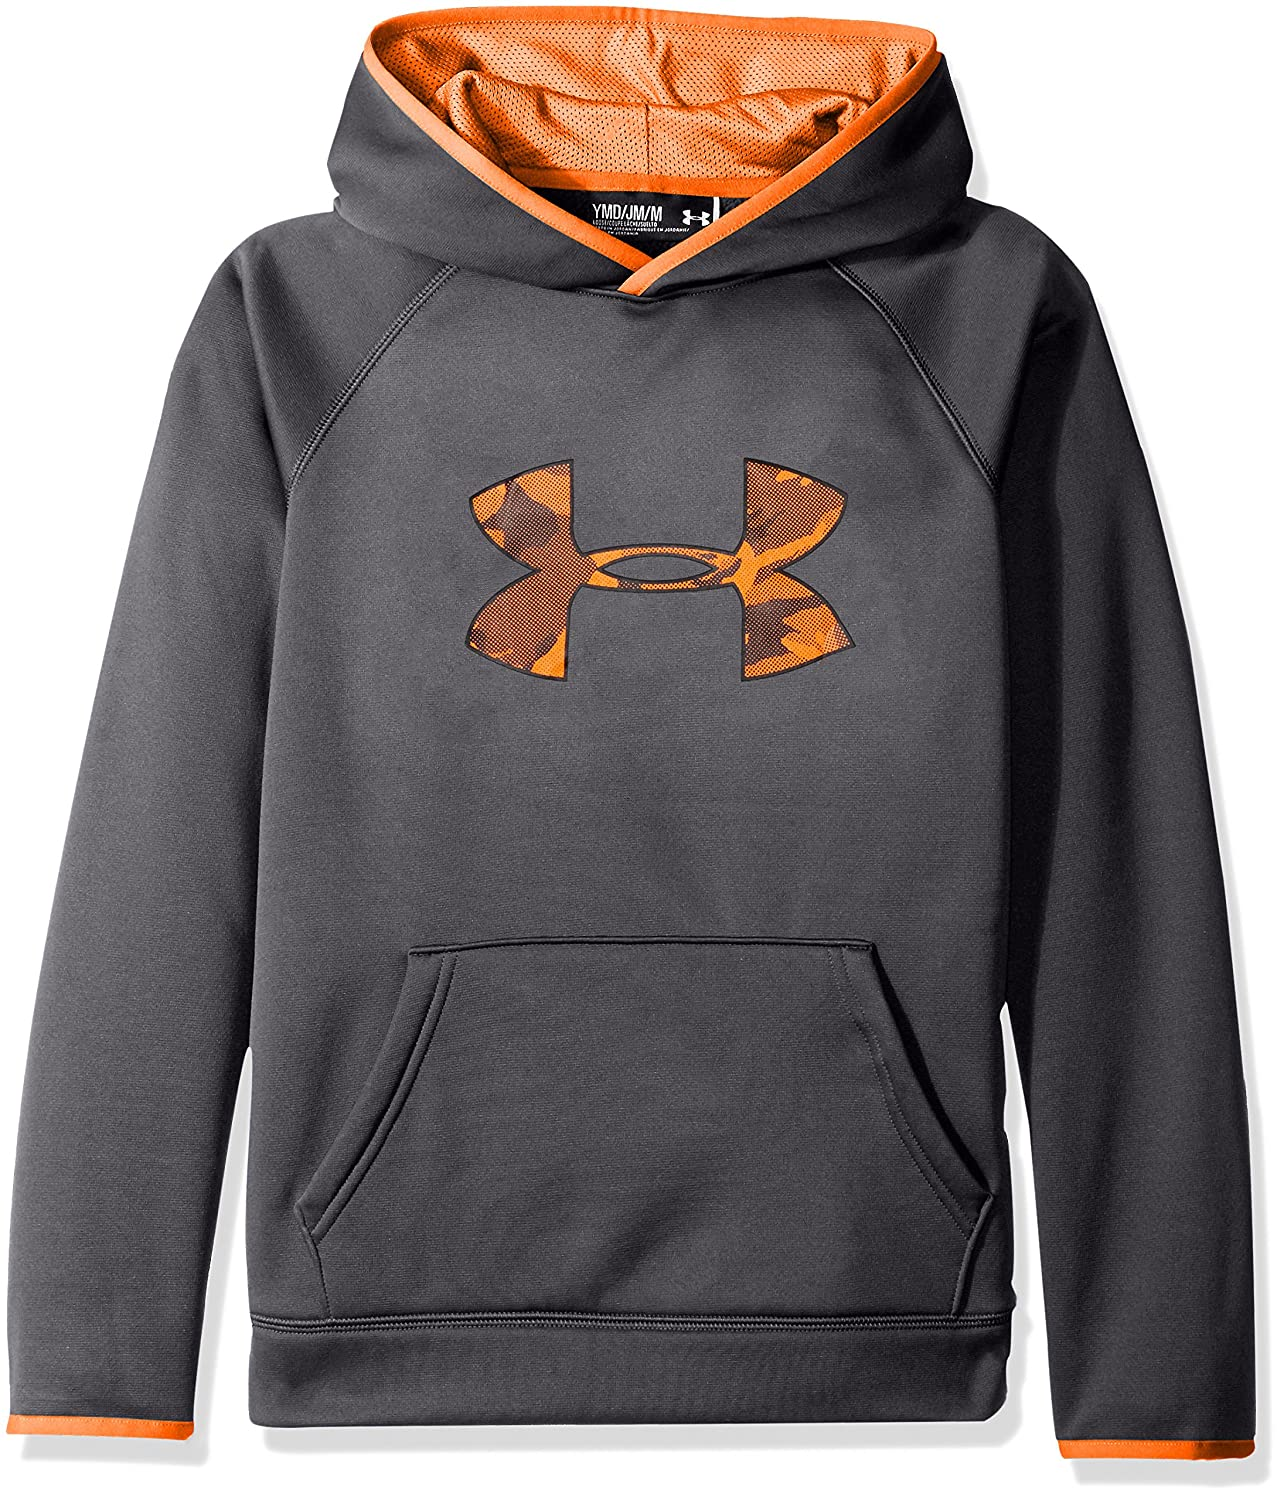 aaad422d8 Under Armour Boys' Storm Armour Fleece Highlight Big Logo Hoodie Under  Armour Apparel 1281073 larger image